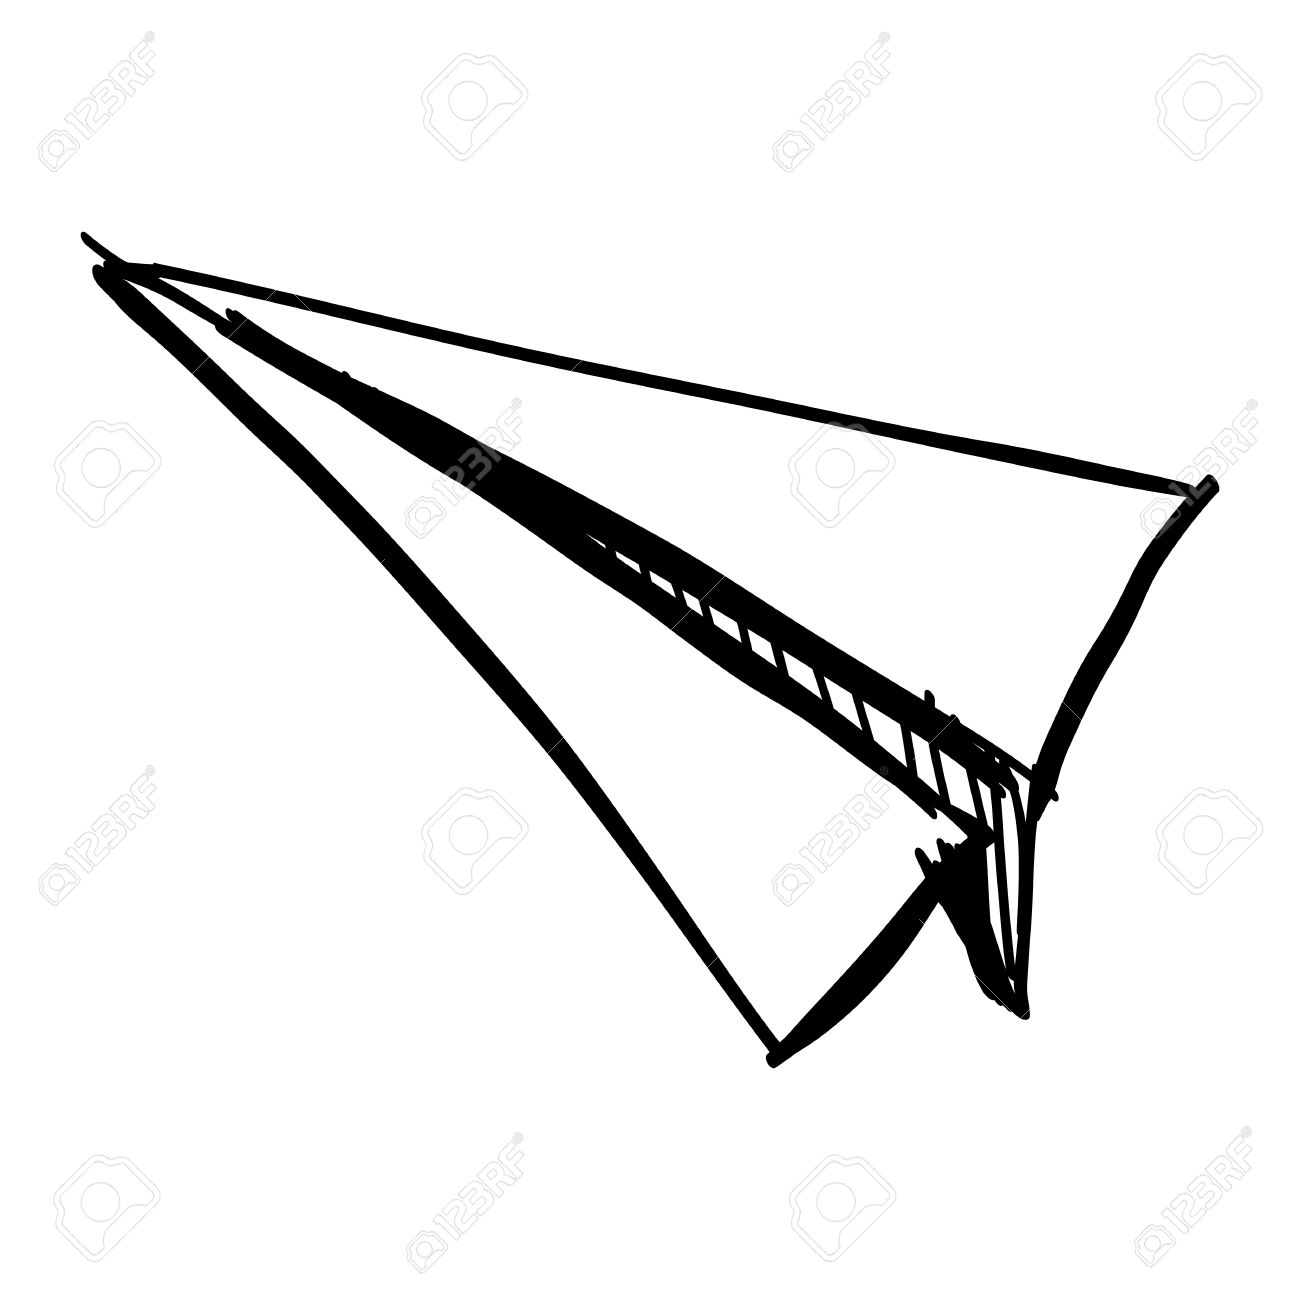 1300x1300 Paper Plane Icon Isolated On White. Hand Drawing Sketch Vector